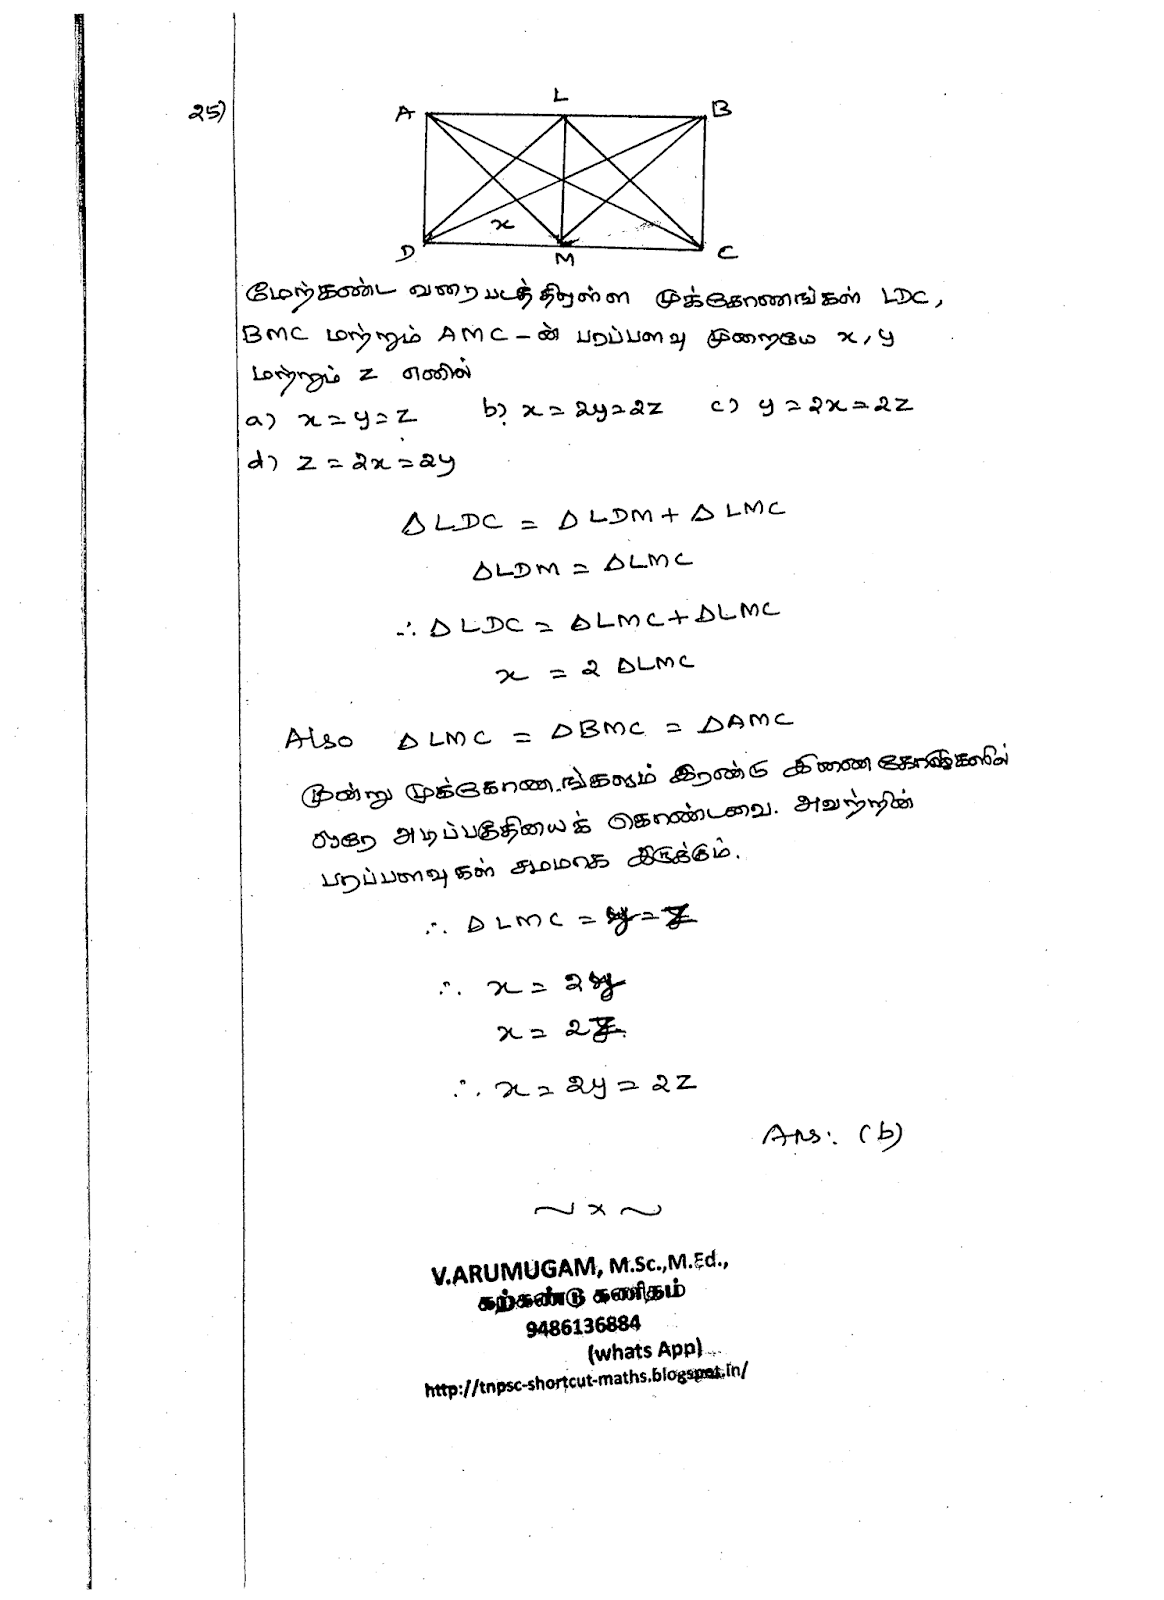 TNPSC – 2019 - Sub-Inspector of Fisheries in Fisheries Department in the Tamil Nadu Fisheries Subordinate Service EXAM - EXAM DATE: 04.05.2019